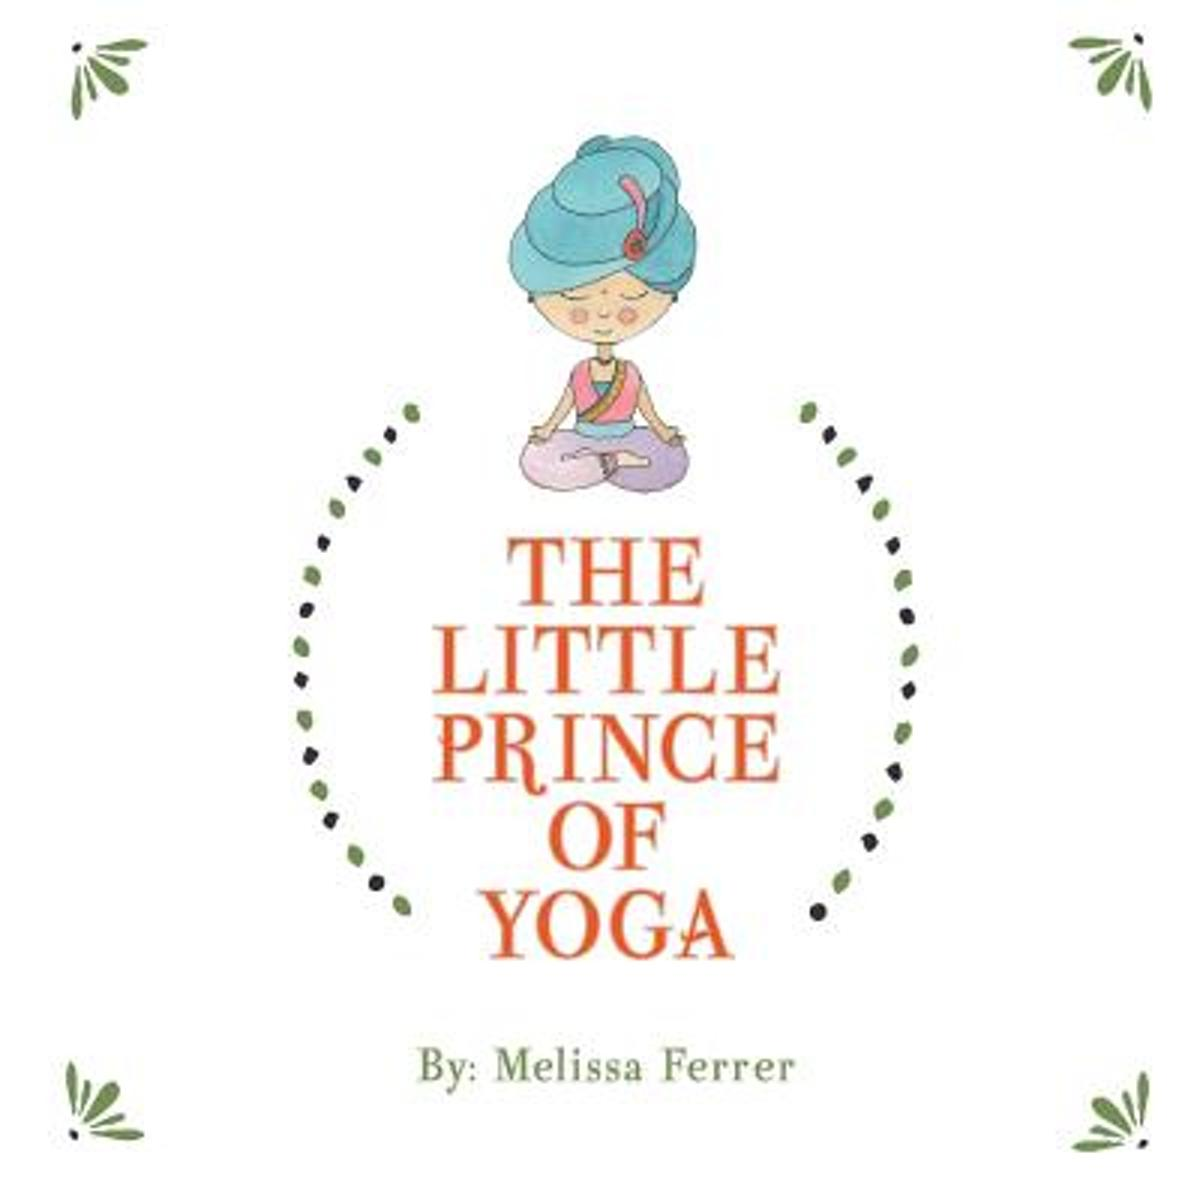 The Little Prince of Yoga